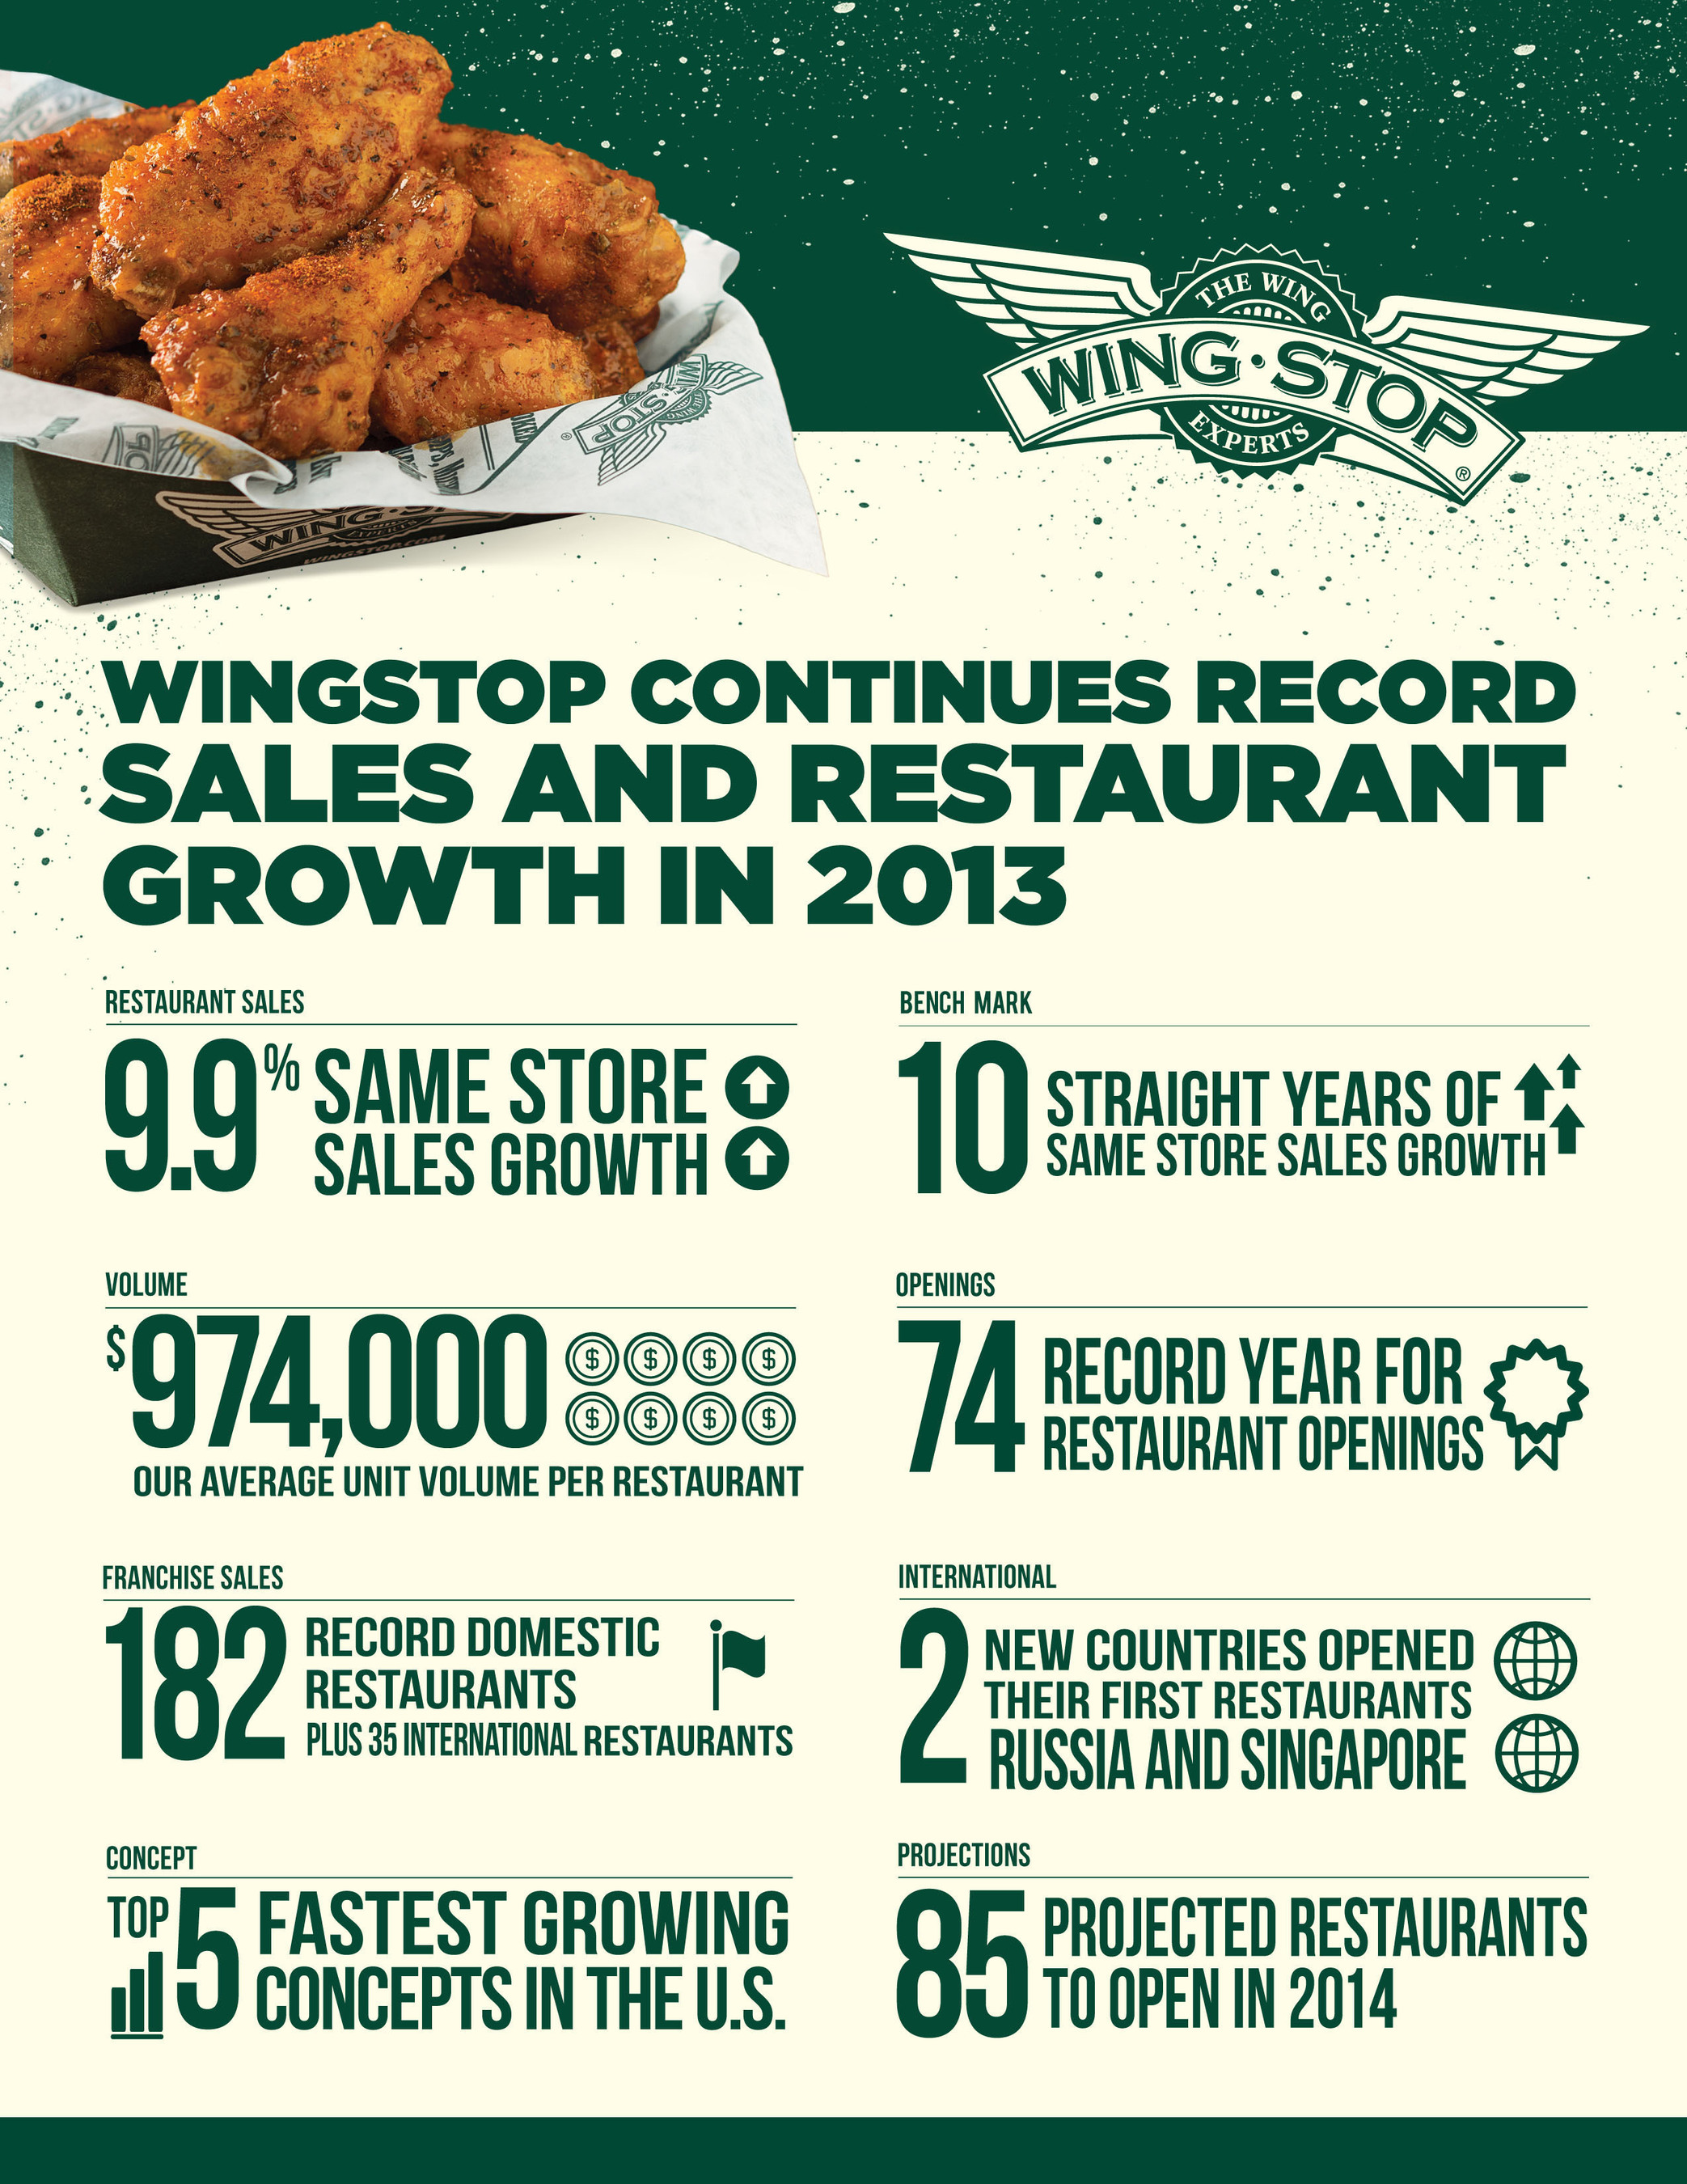 Wingstop Continues Record Sales and Restaurant Growth in 2013.  (PRNewsFoto/Wingstop)